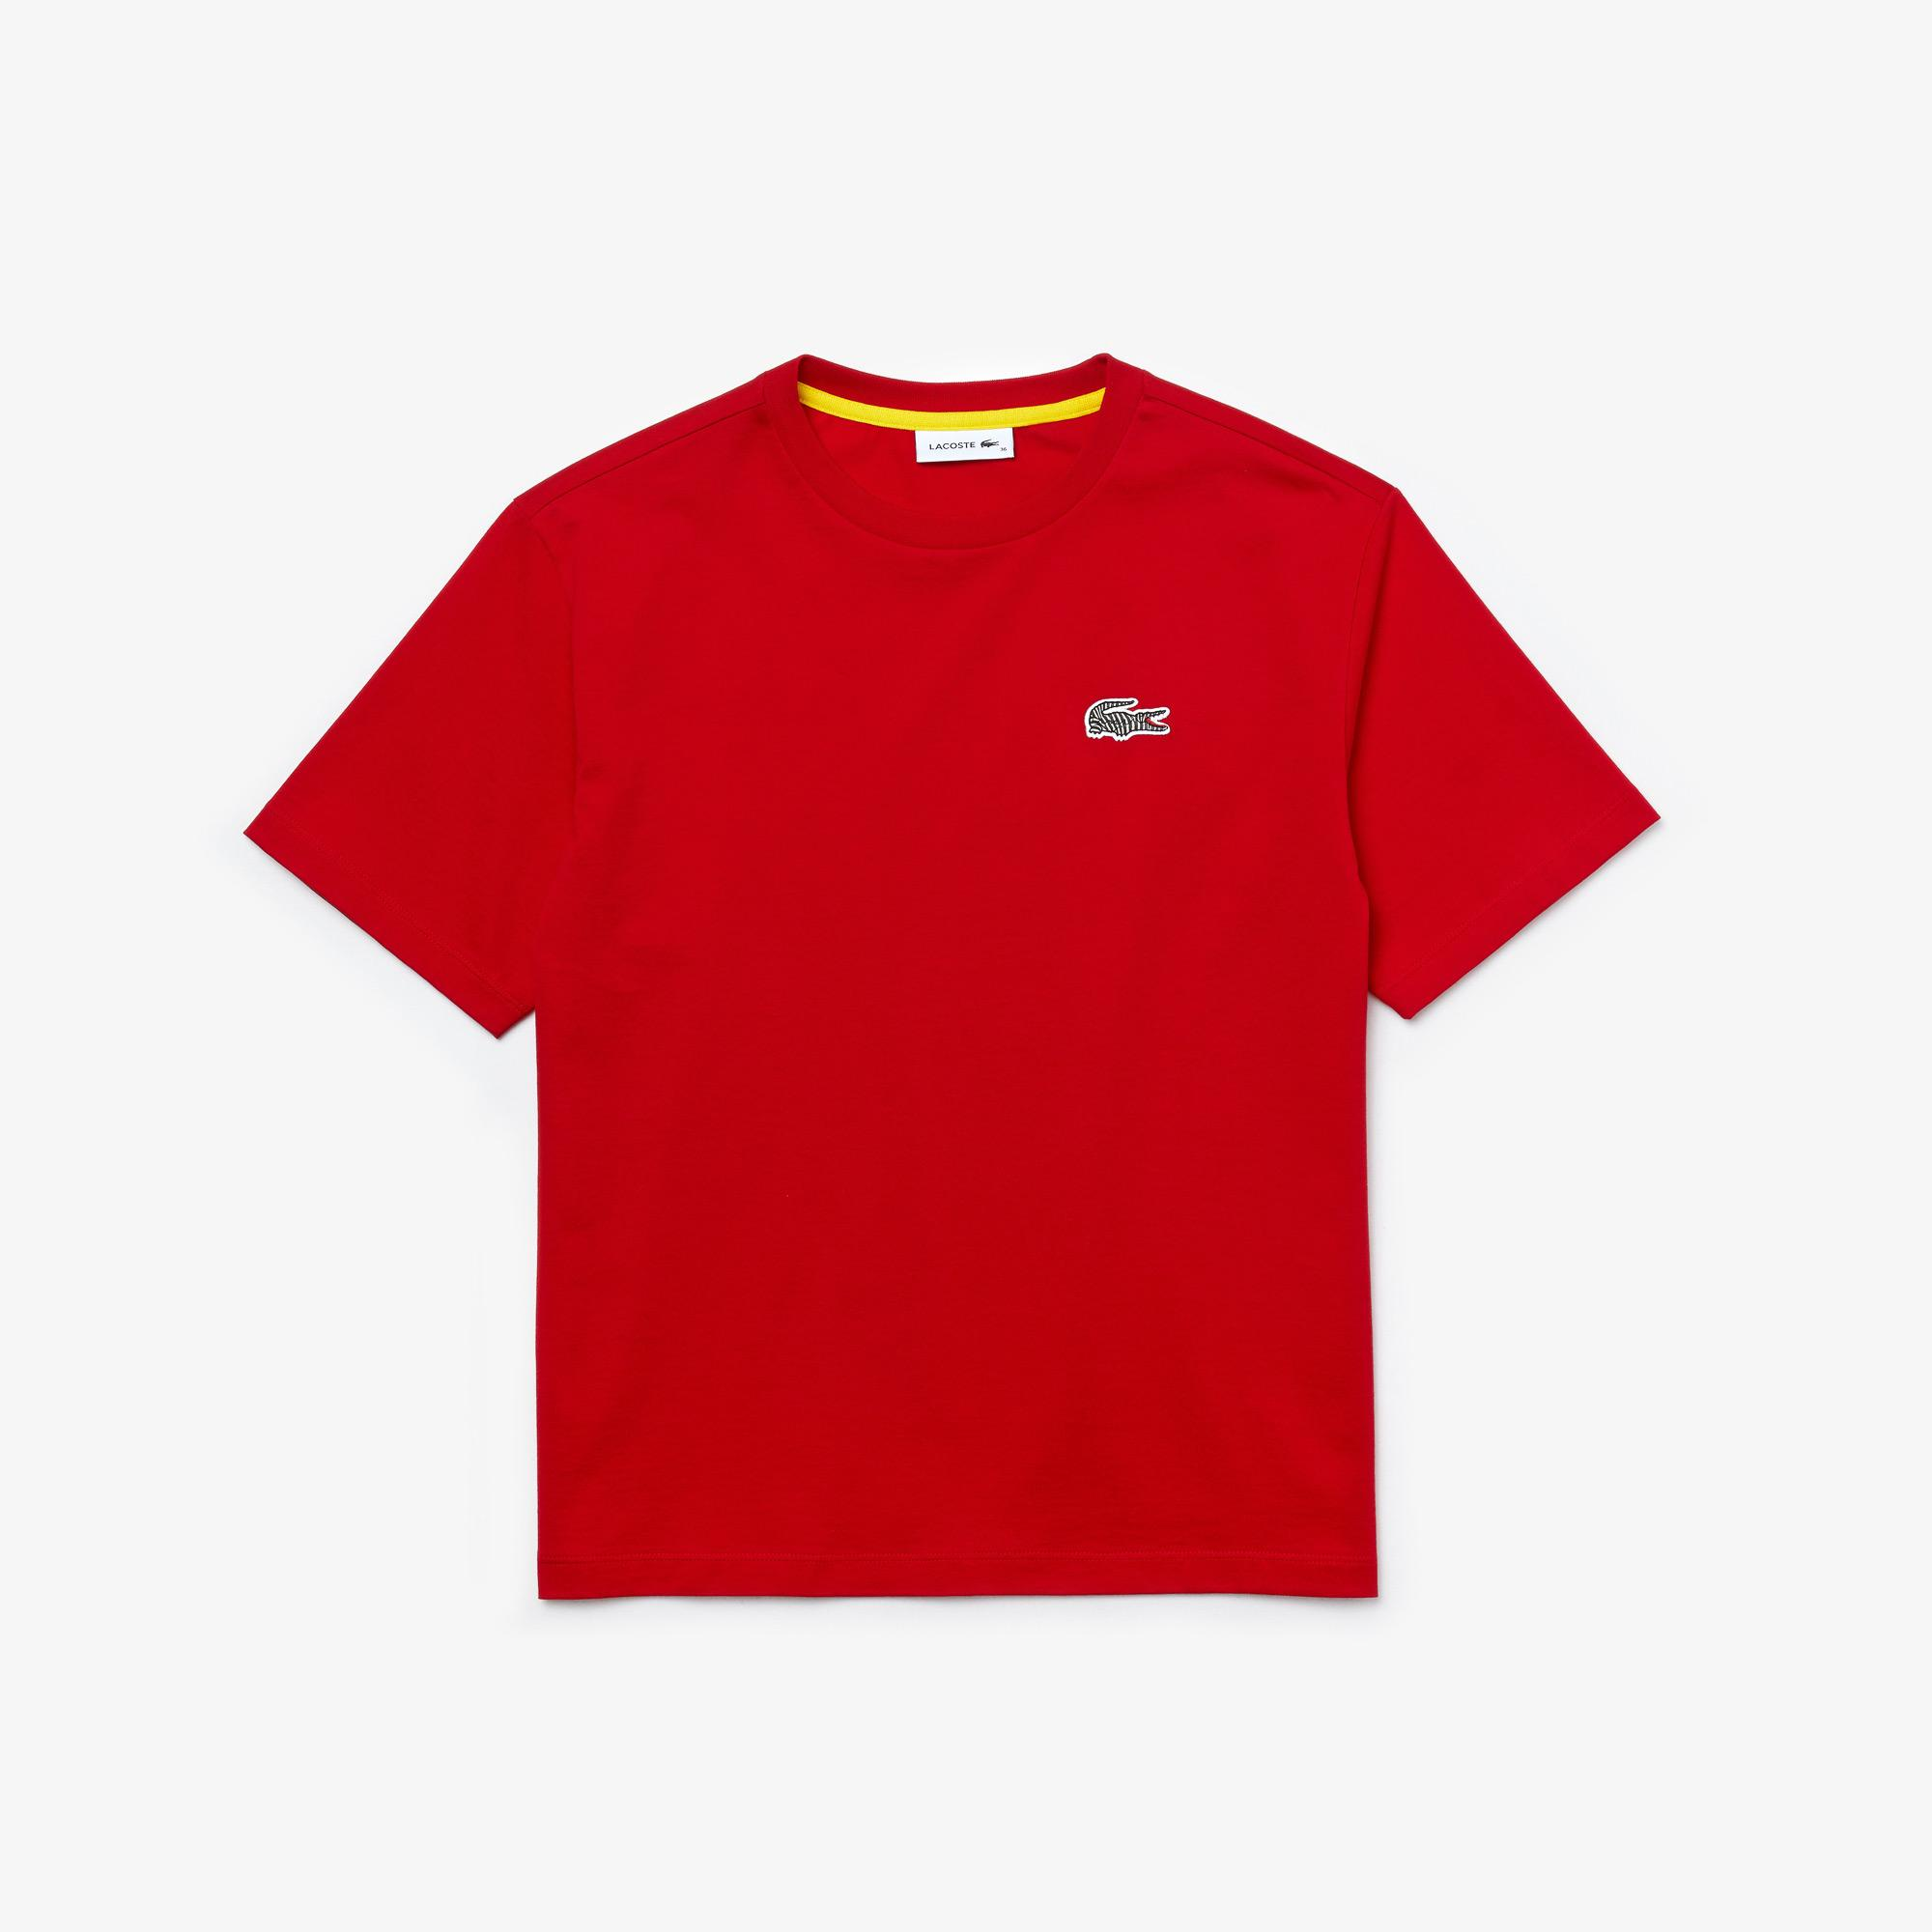 Lacoste Women's x National Geographic Cotton T-shirt